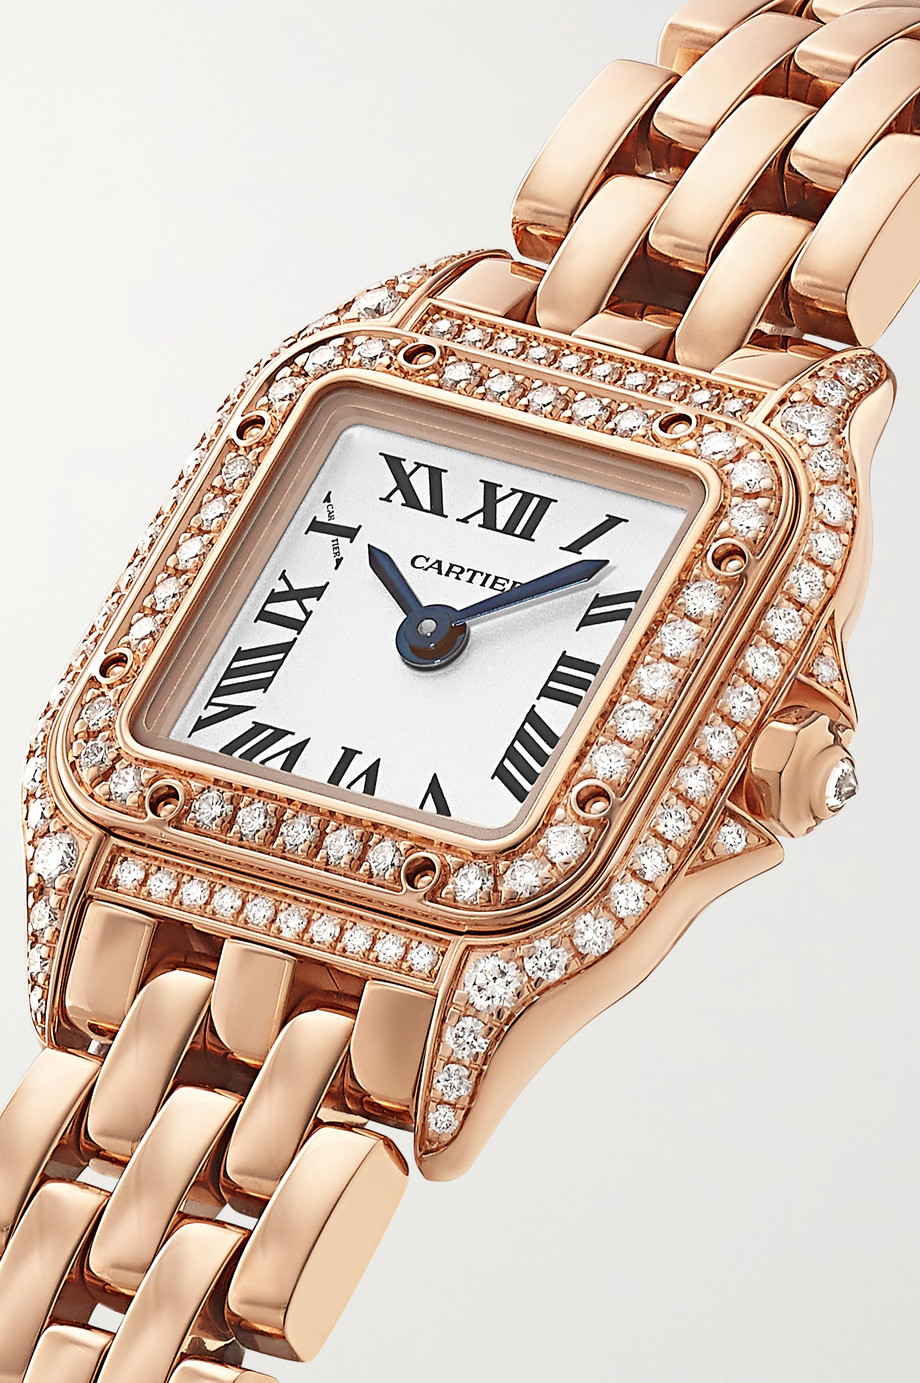 Cartier Panthère de Cartier Manchette 20mm small 18-karat rose gold and diamond watch